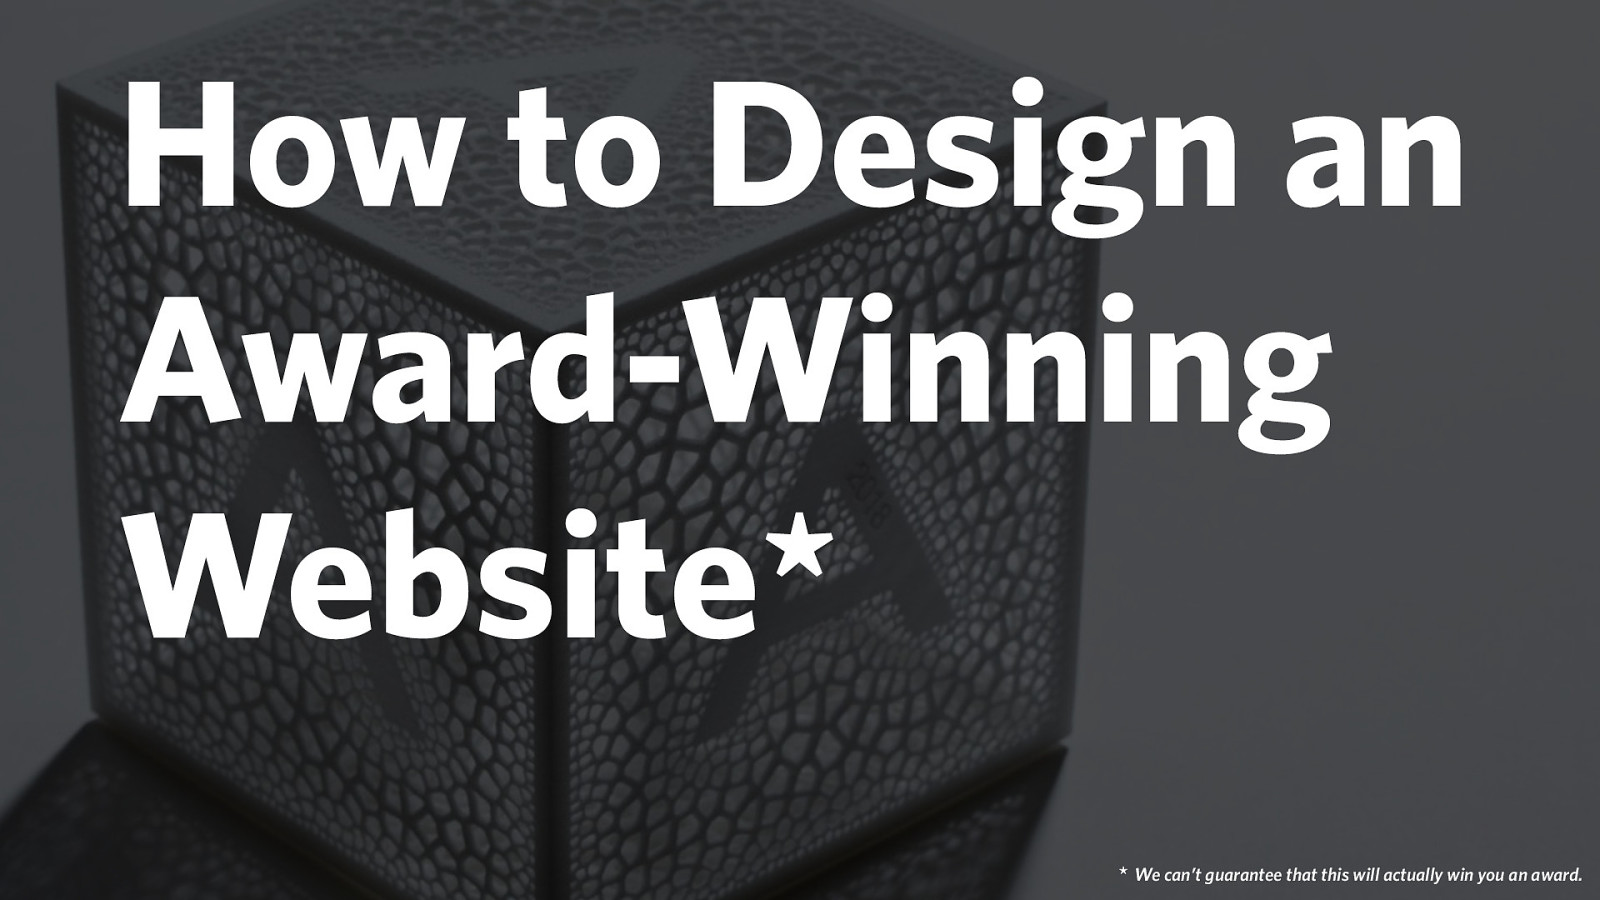 How to design an award-winning website